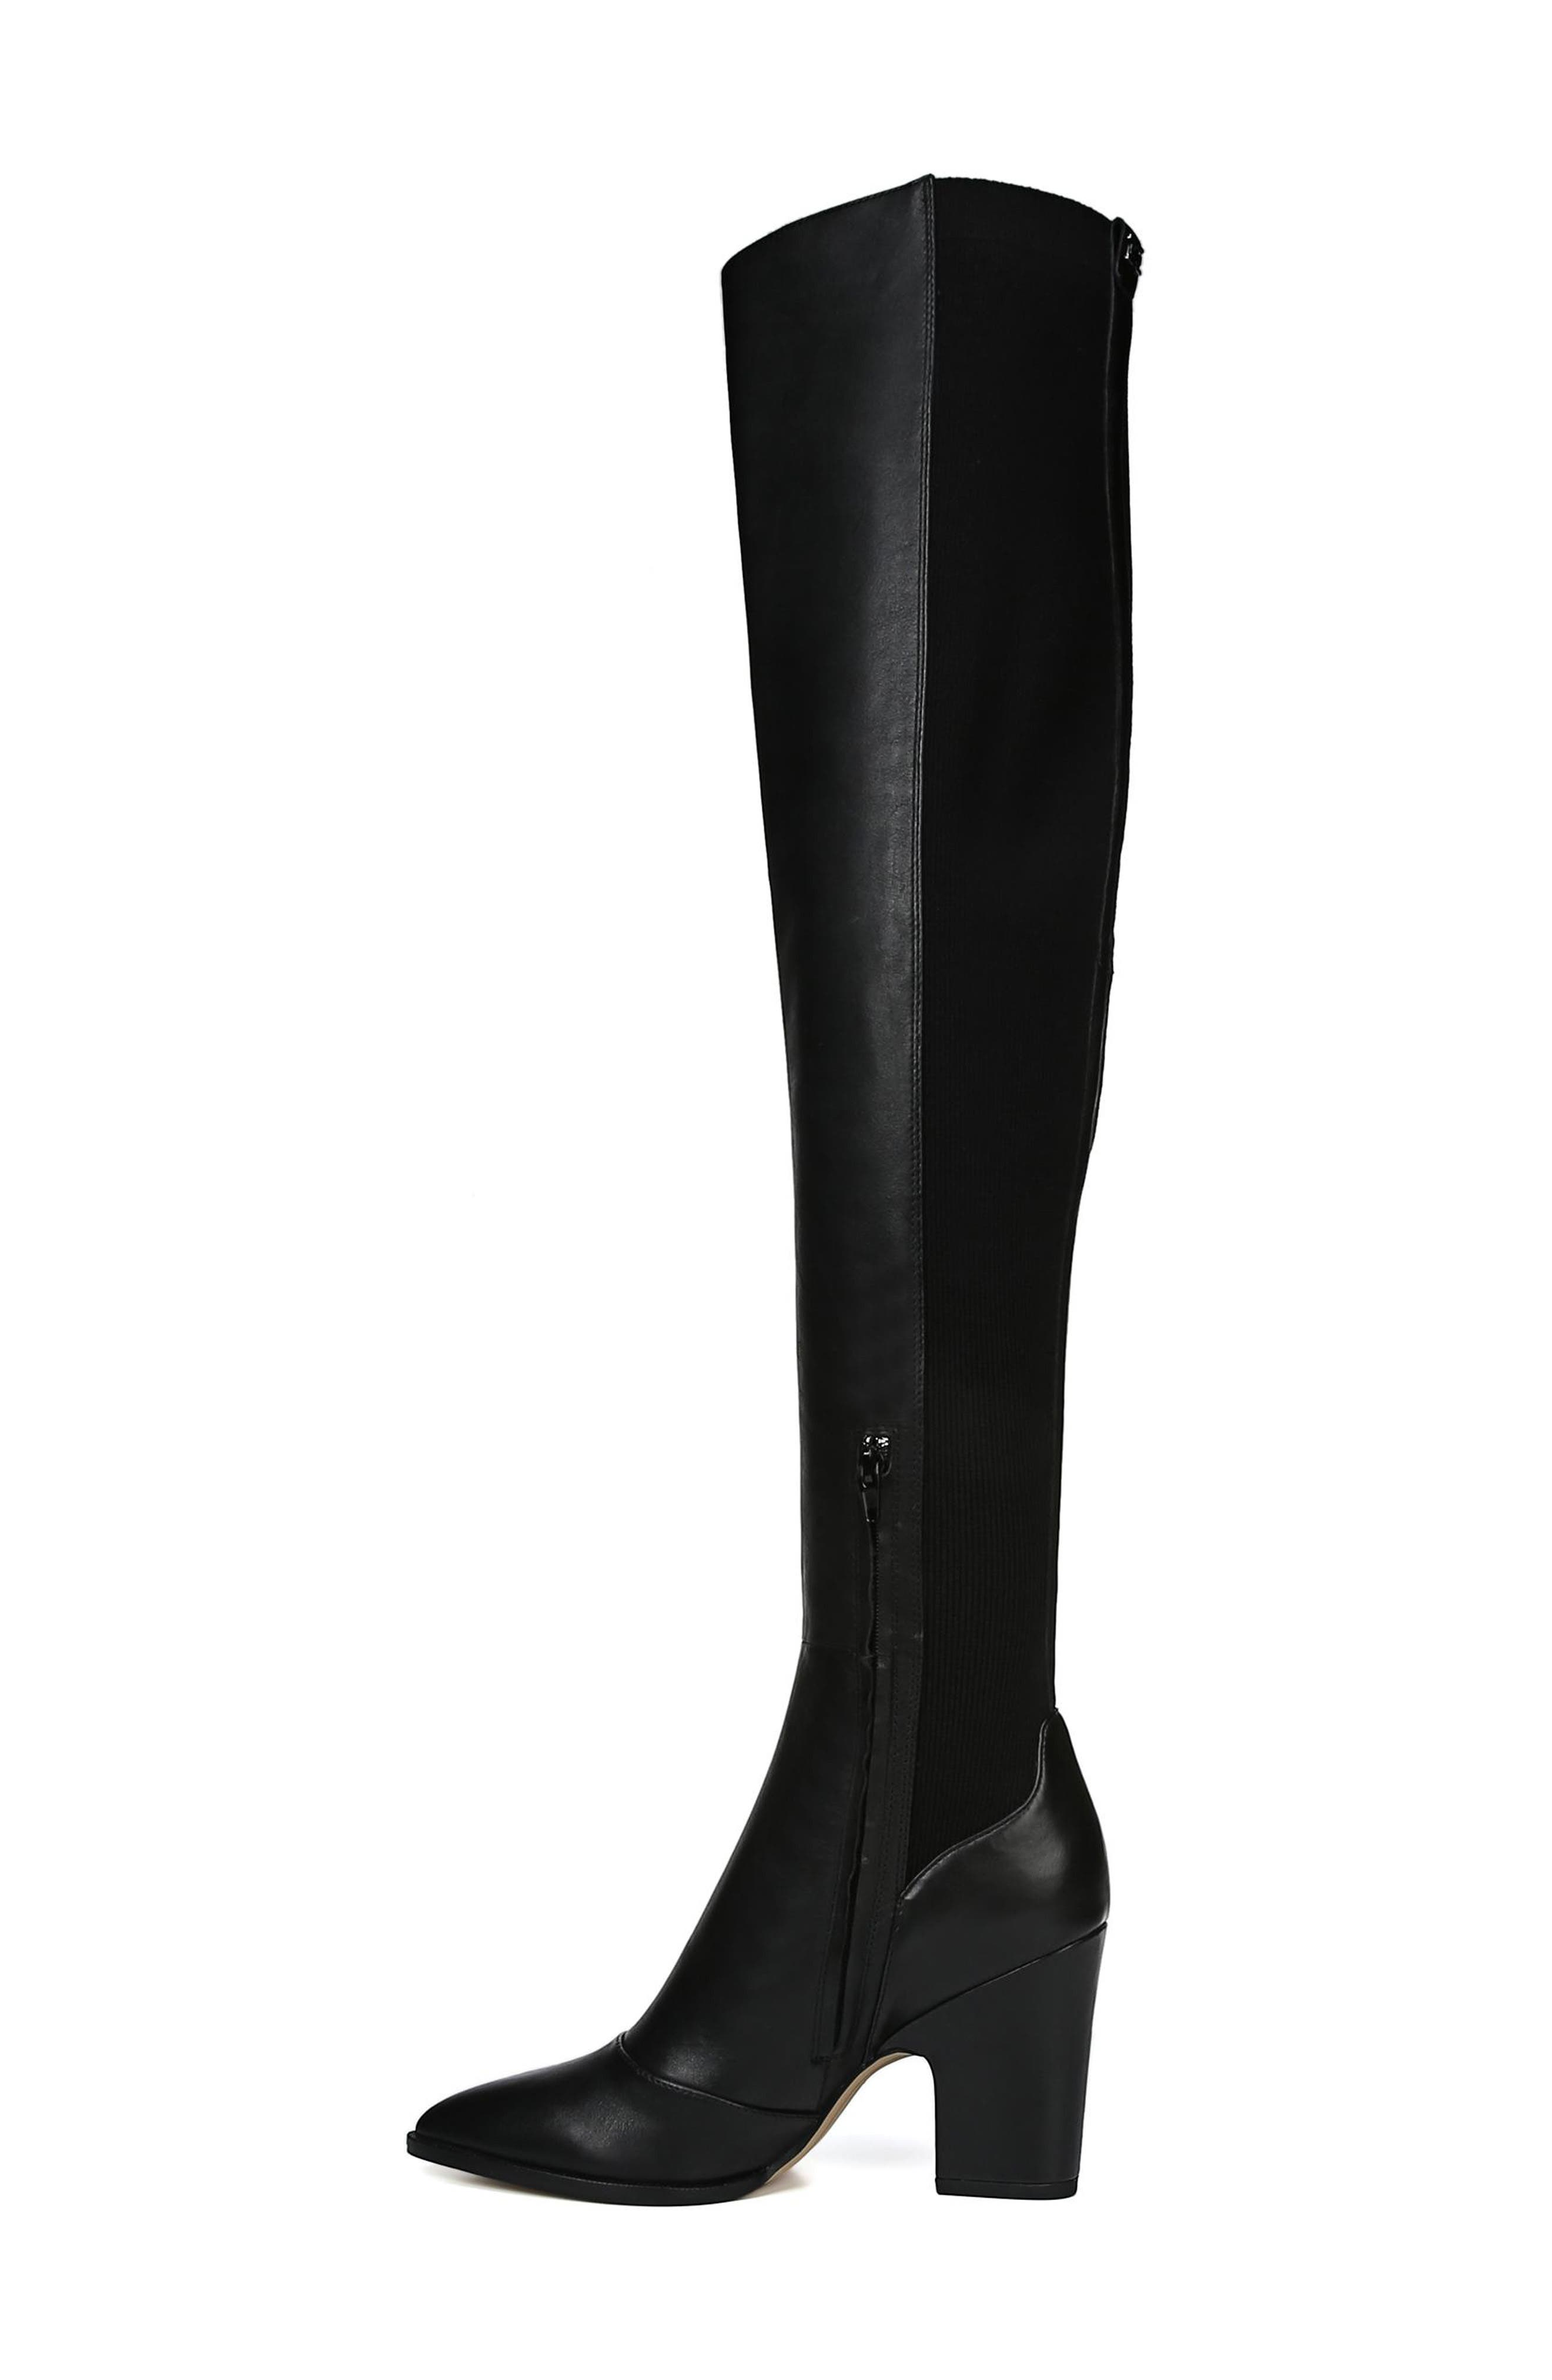 Natasha Over the Knee Boot,                             Alternate thumbnail 8, color,                             BLACK LEATHER